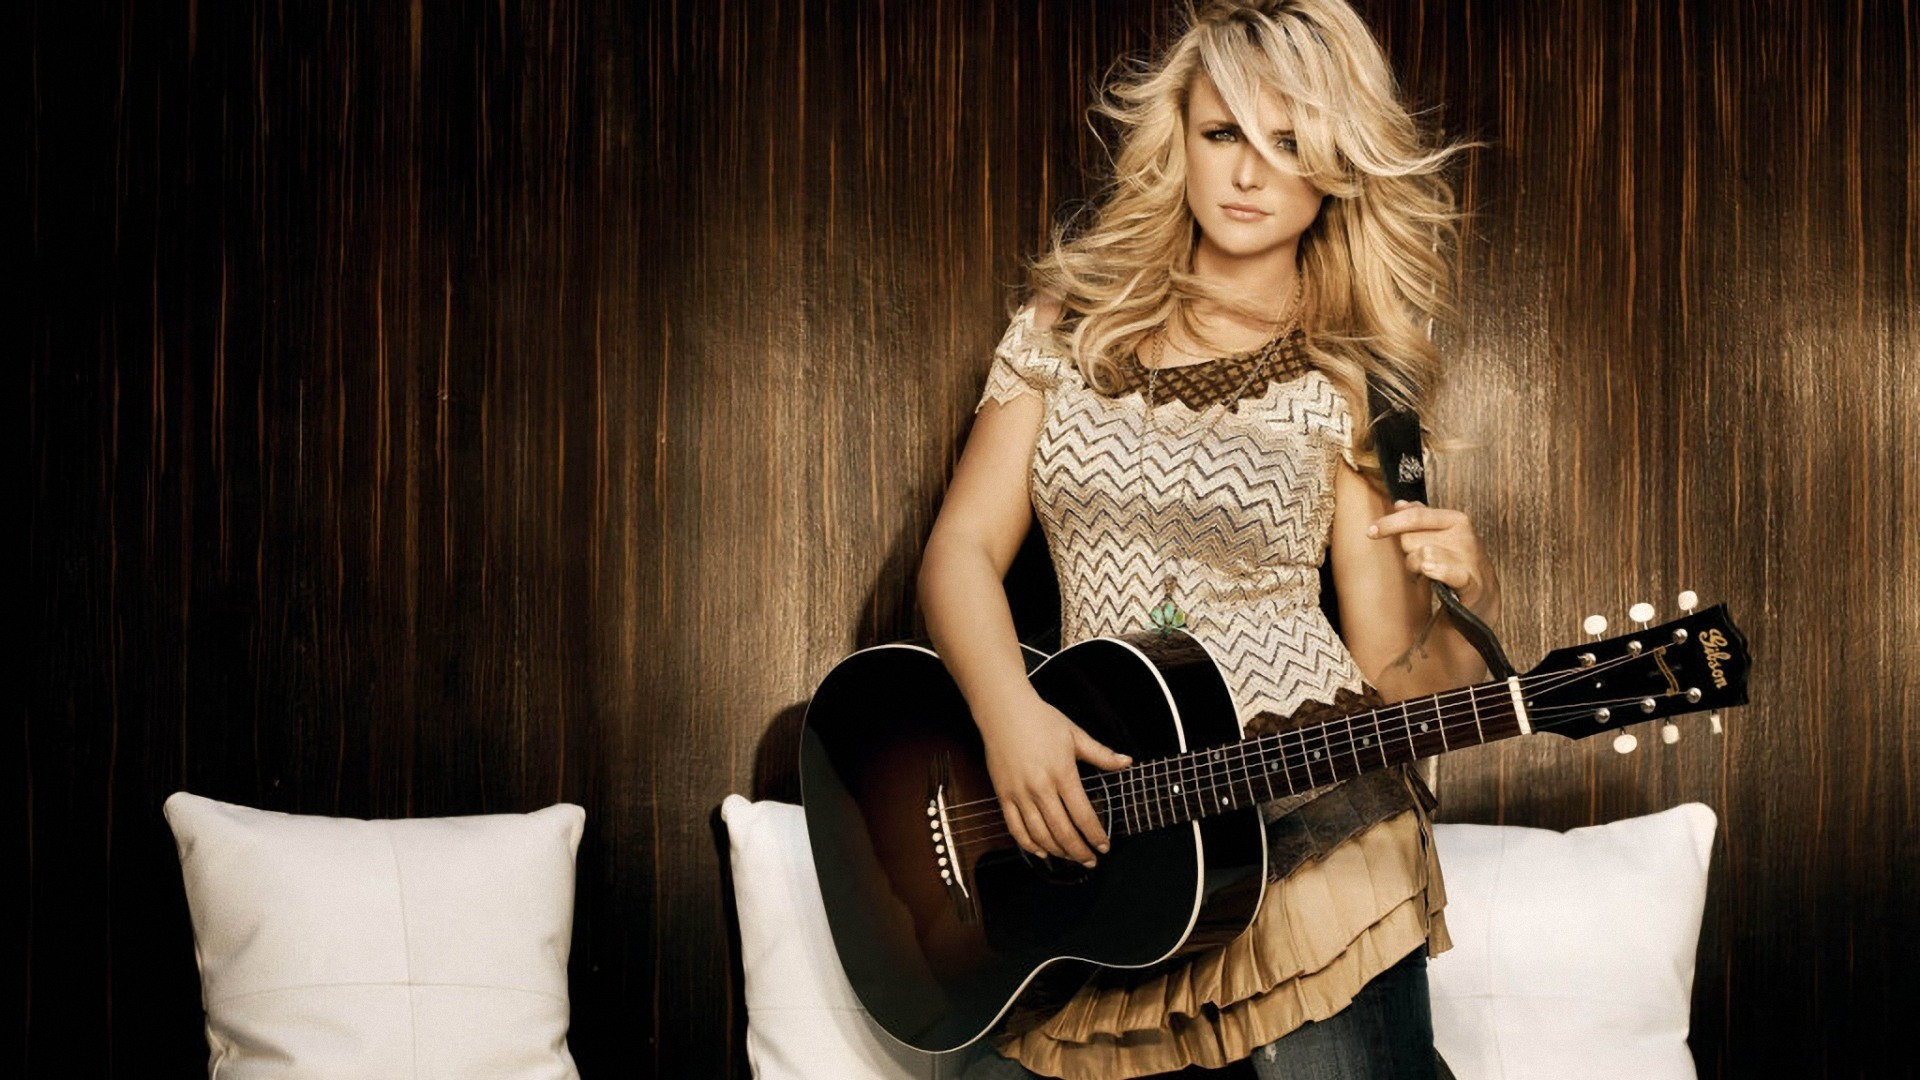 1920x1080 Miranda lambert country singer photos .